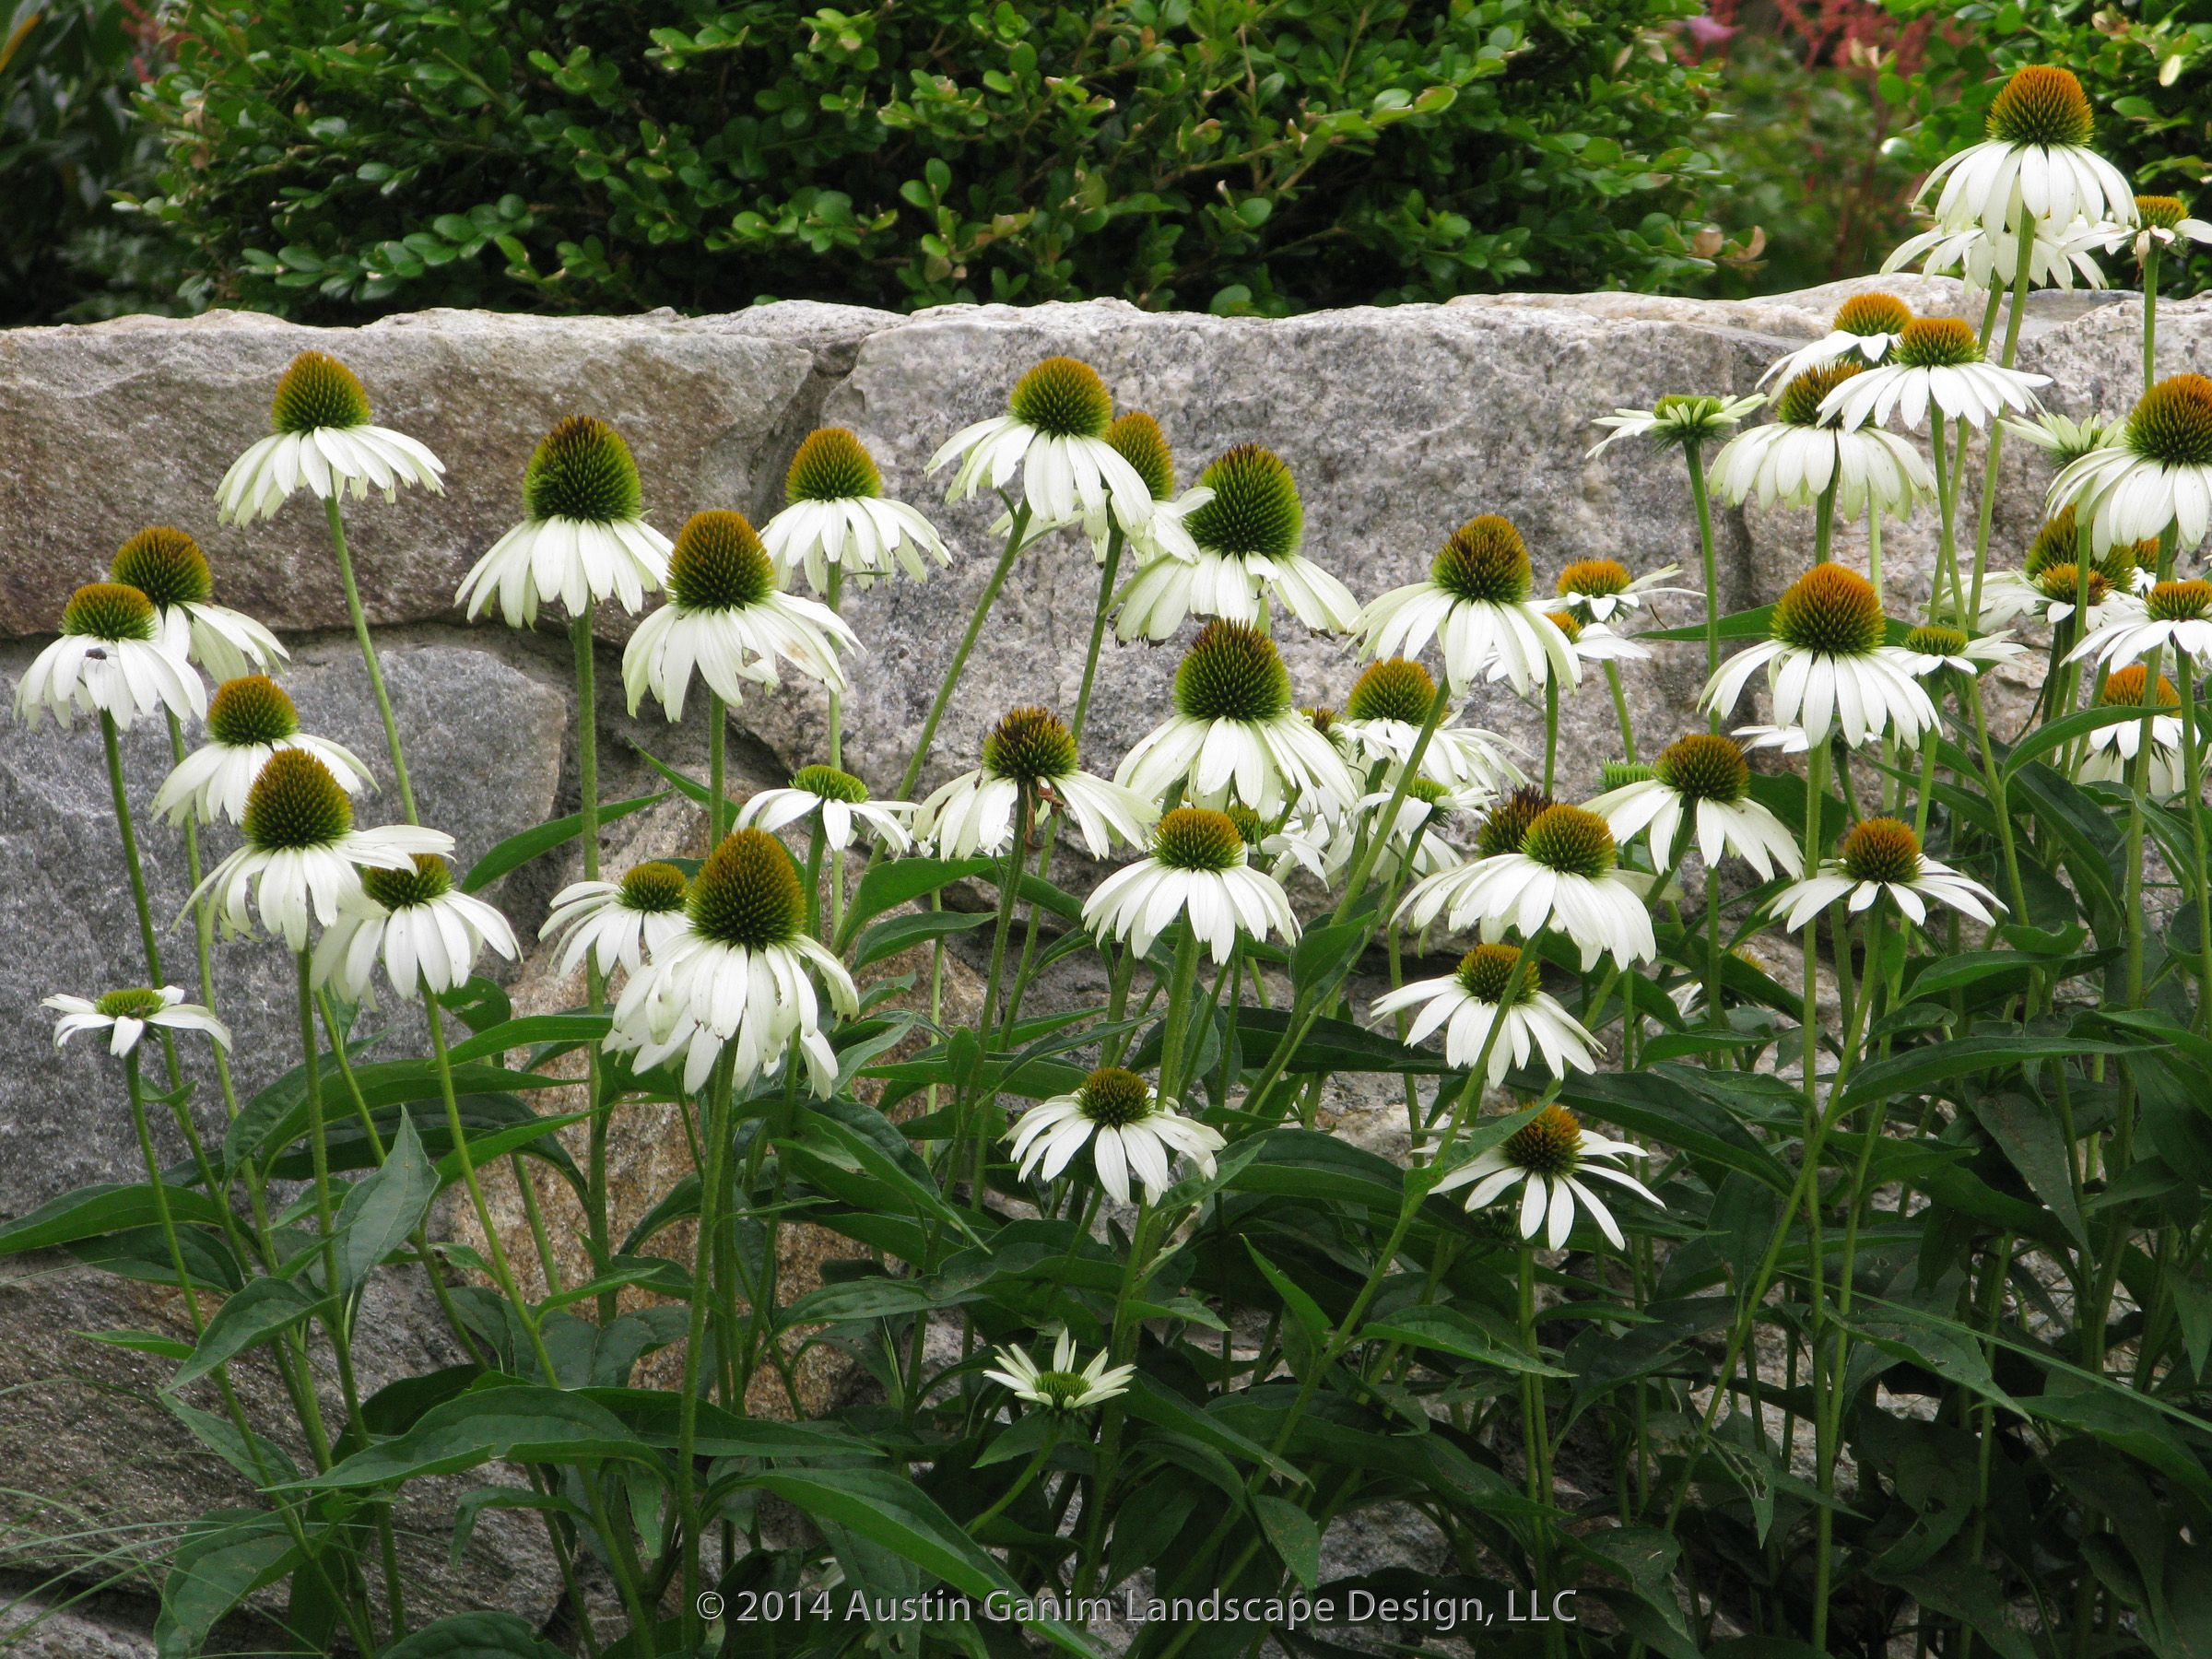 Echinacea purpurea 'White Swan' - coneflower, this summer perennial is a favorite of butterflies and hummingbirds. USDA Hardiness Zones 4-8